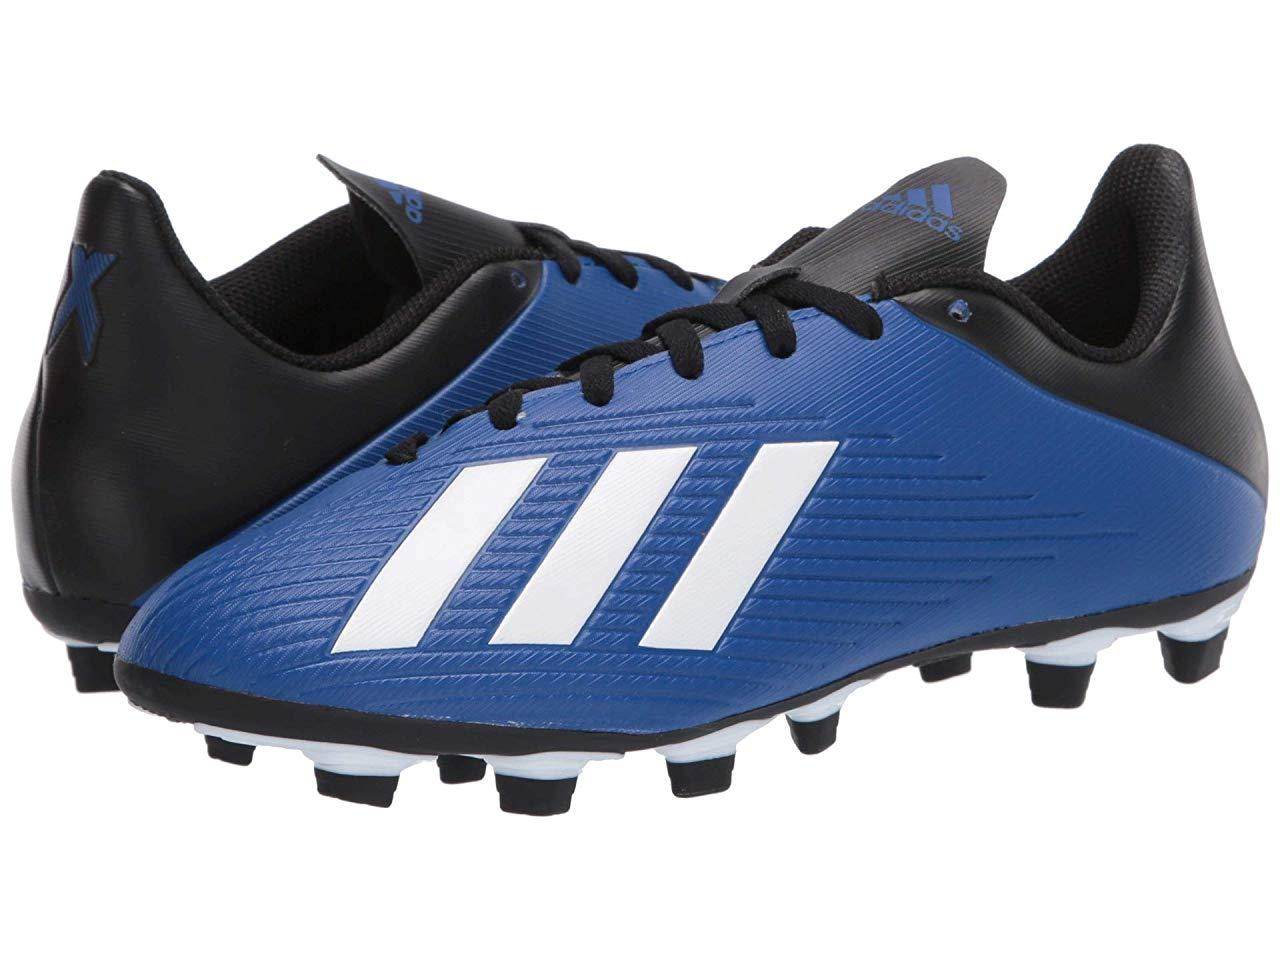 Кроссовки/Кеды adidas X 19.4 FxG Team Royal Blue/Footwear White/Core Black